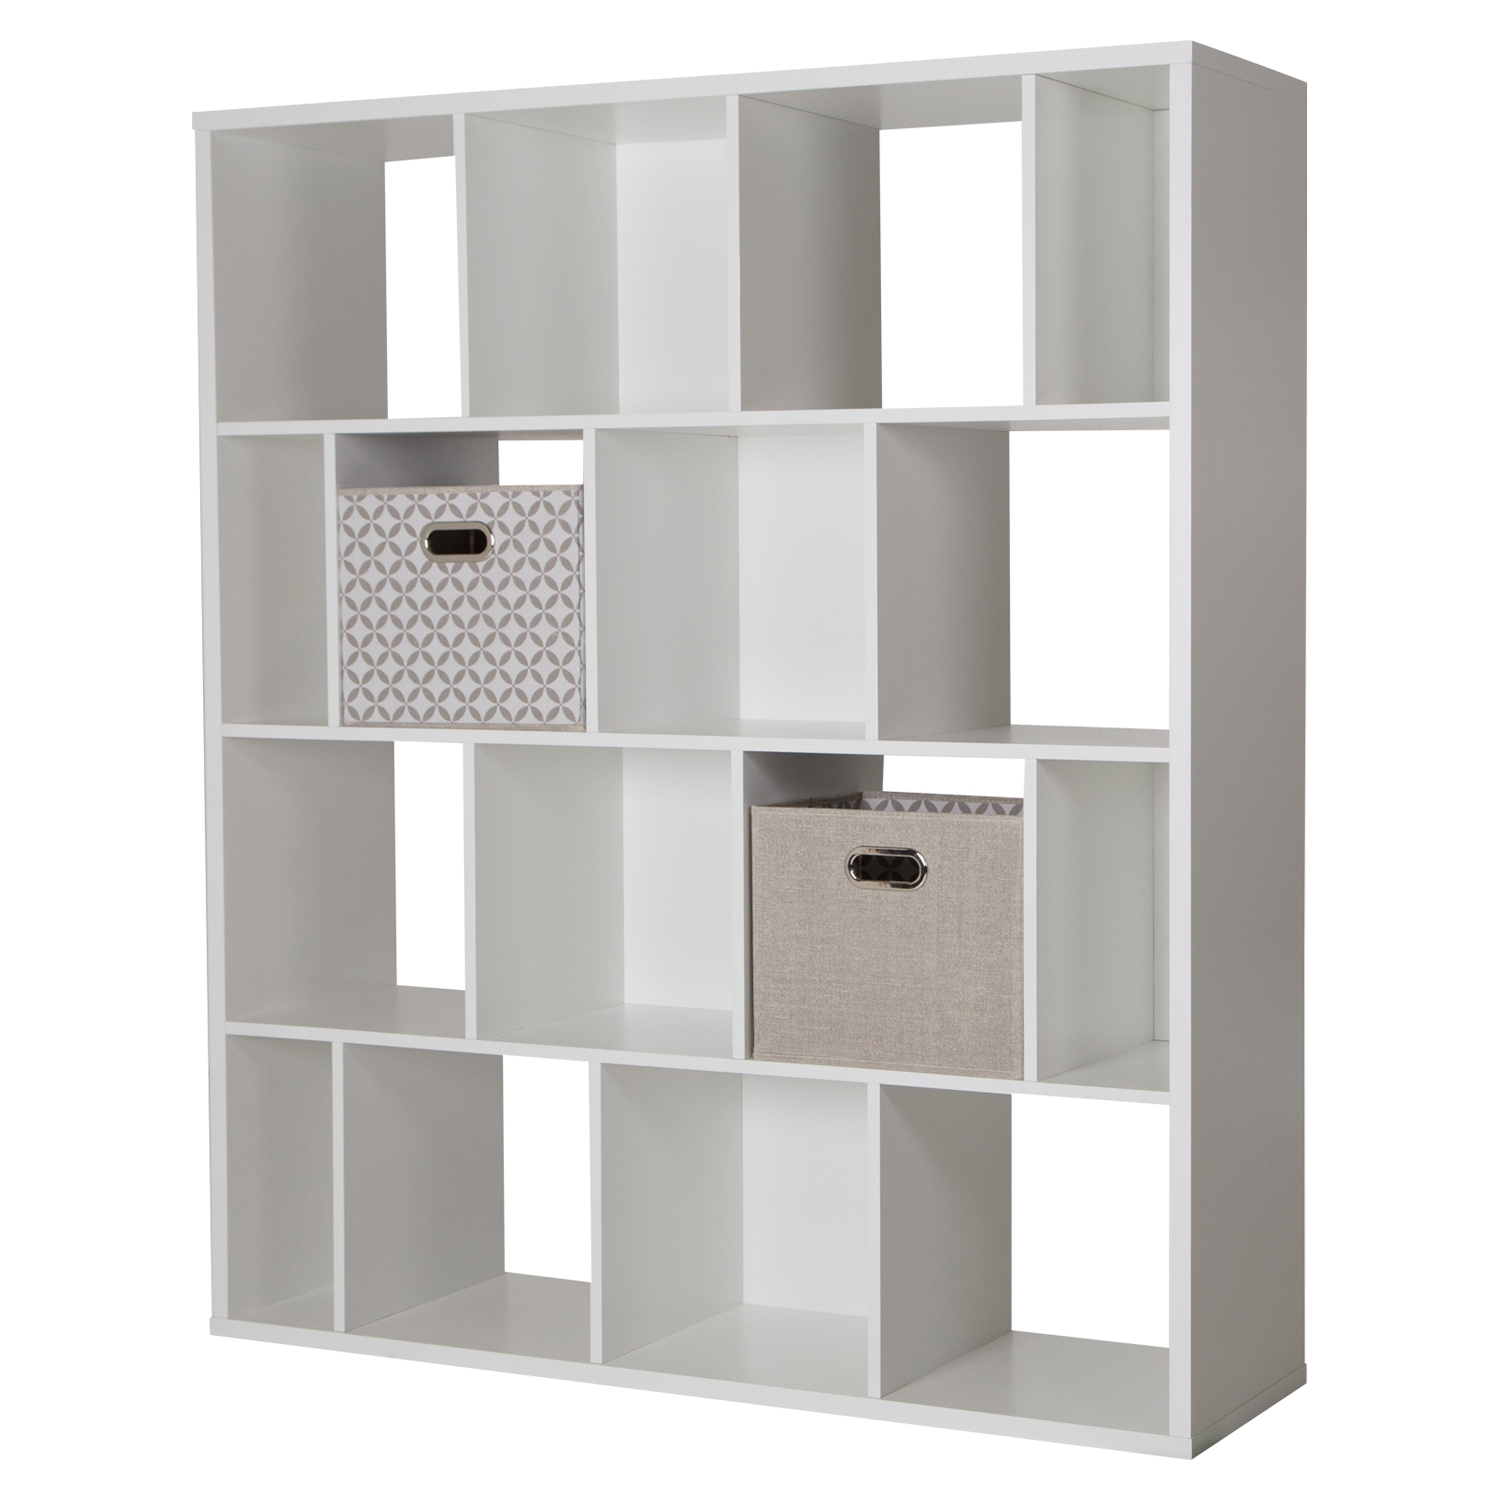 Reveal 16 Cubes Shelving Unit - 2 Fabric Storage Baskets, Pure White - SS-100025